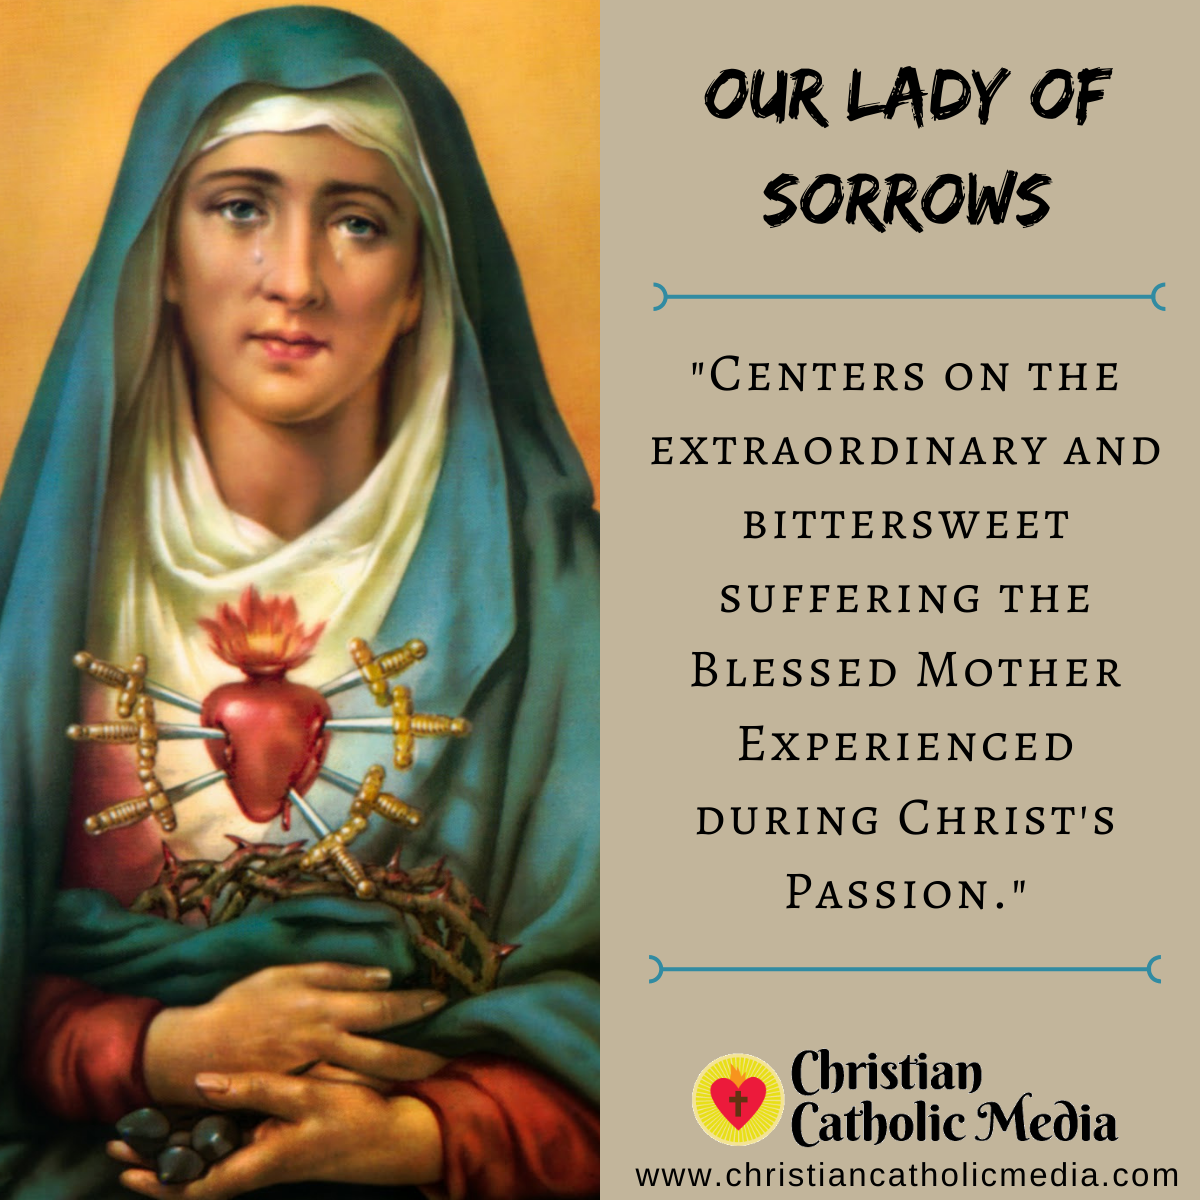 Our Lady of Sorrows - Wednesday September 15, 2021